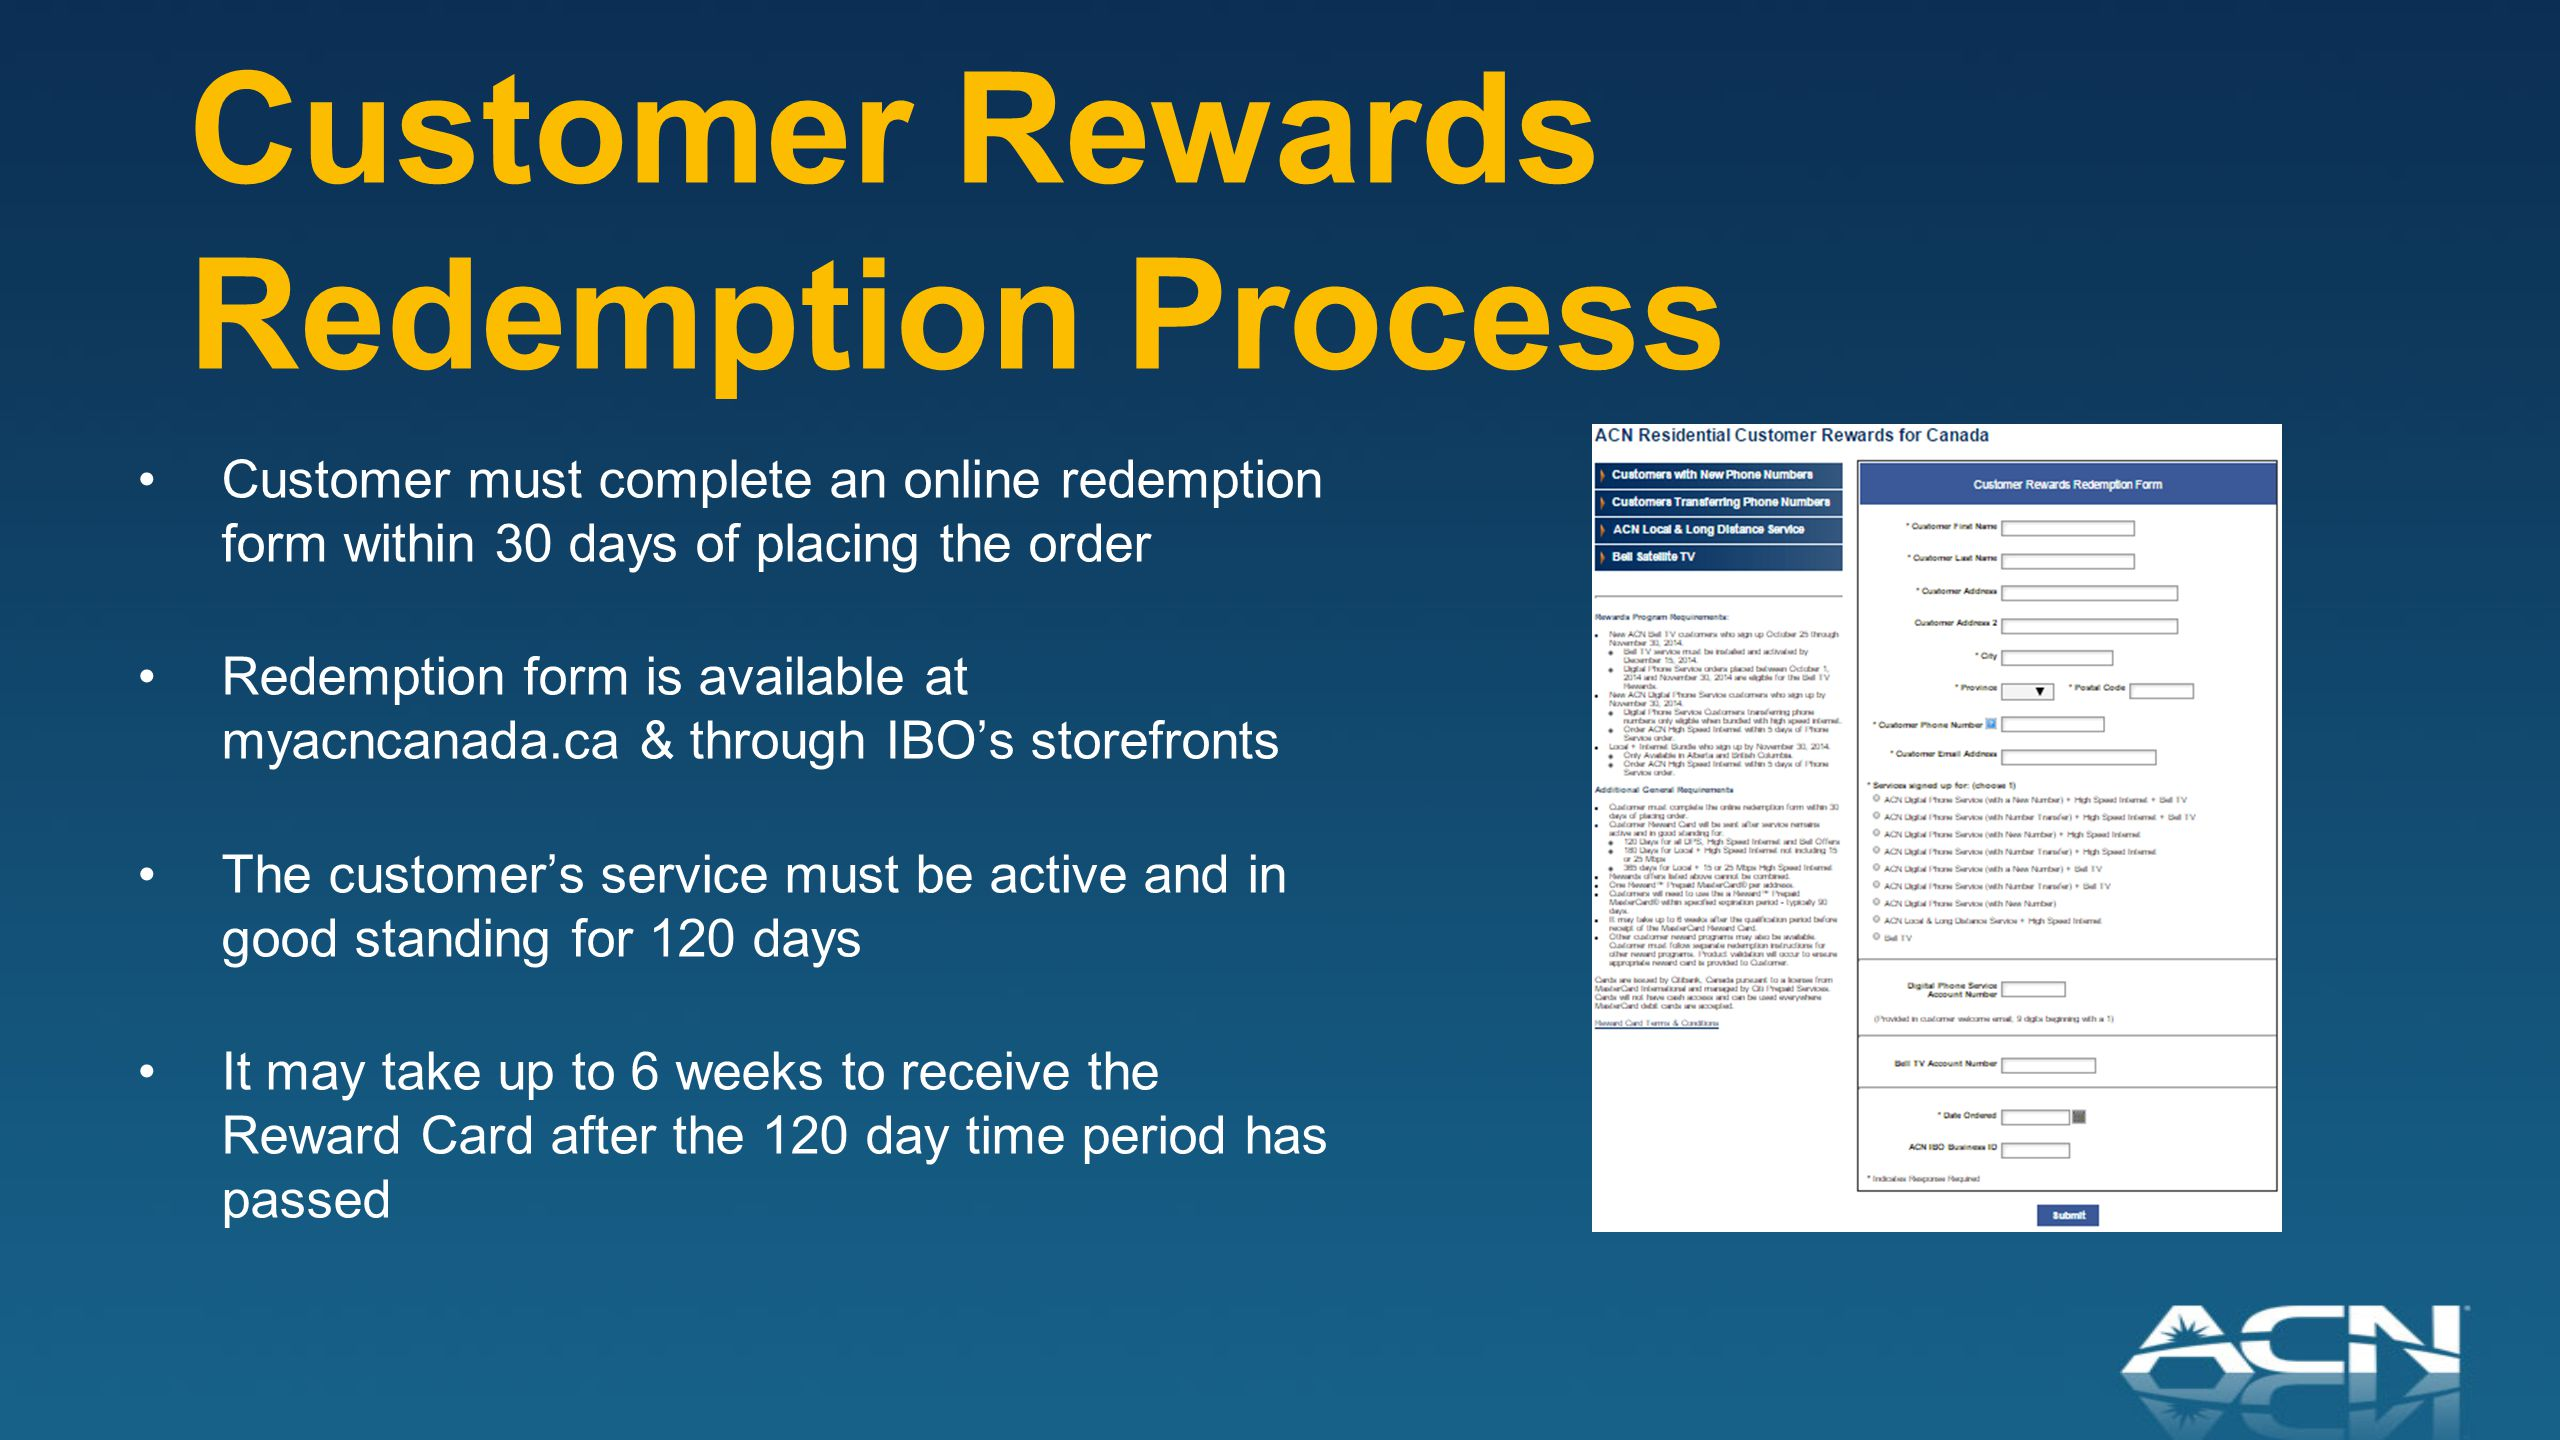 Customer Rewards Redemption Process Customer must complete an online redemption form within 30 days of placing the order Redemption form is available at myacncanada.ca & through IBO's storefronts The customer's service must be active and in good standing for 120 days It may take up to 6 weeks to receive the Reward Card after the 120 day time period has passed